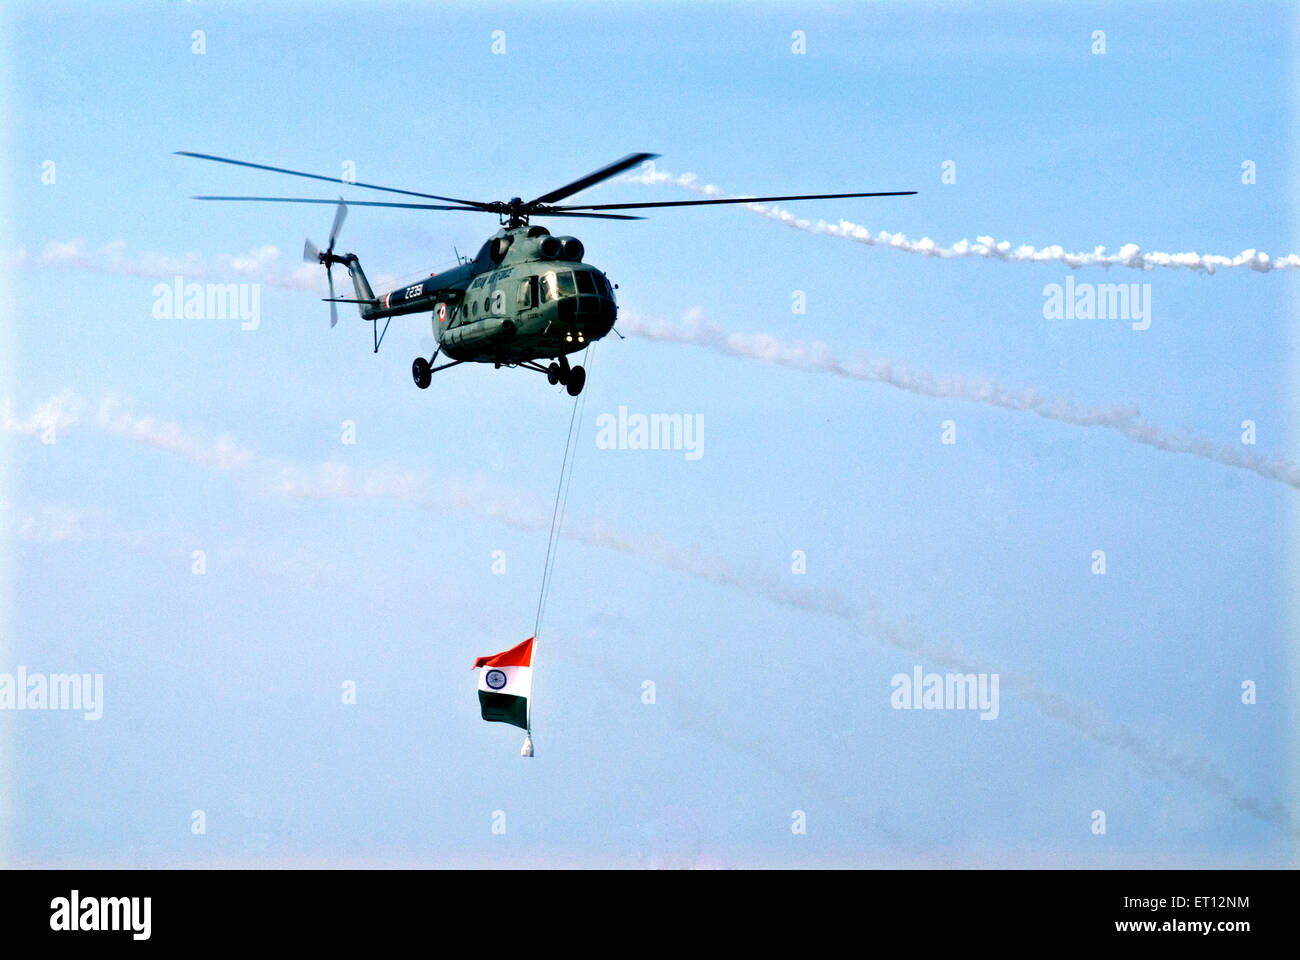 Helicopter flying with national flag against air attack on Air Force Day ; Trivandrum ; Kerala ; India 20 July 2008 - Stock Image